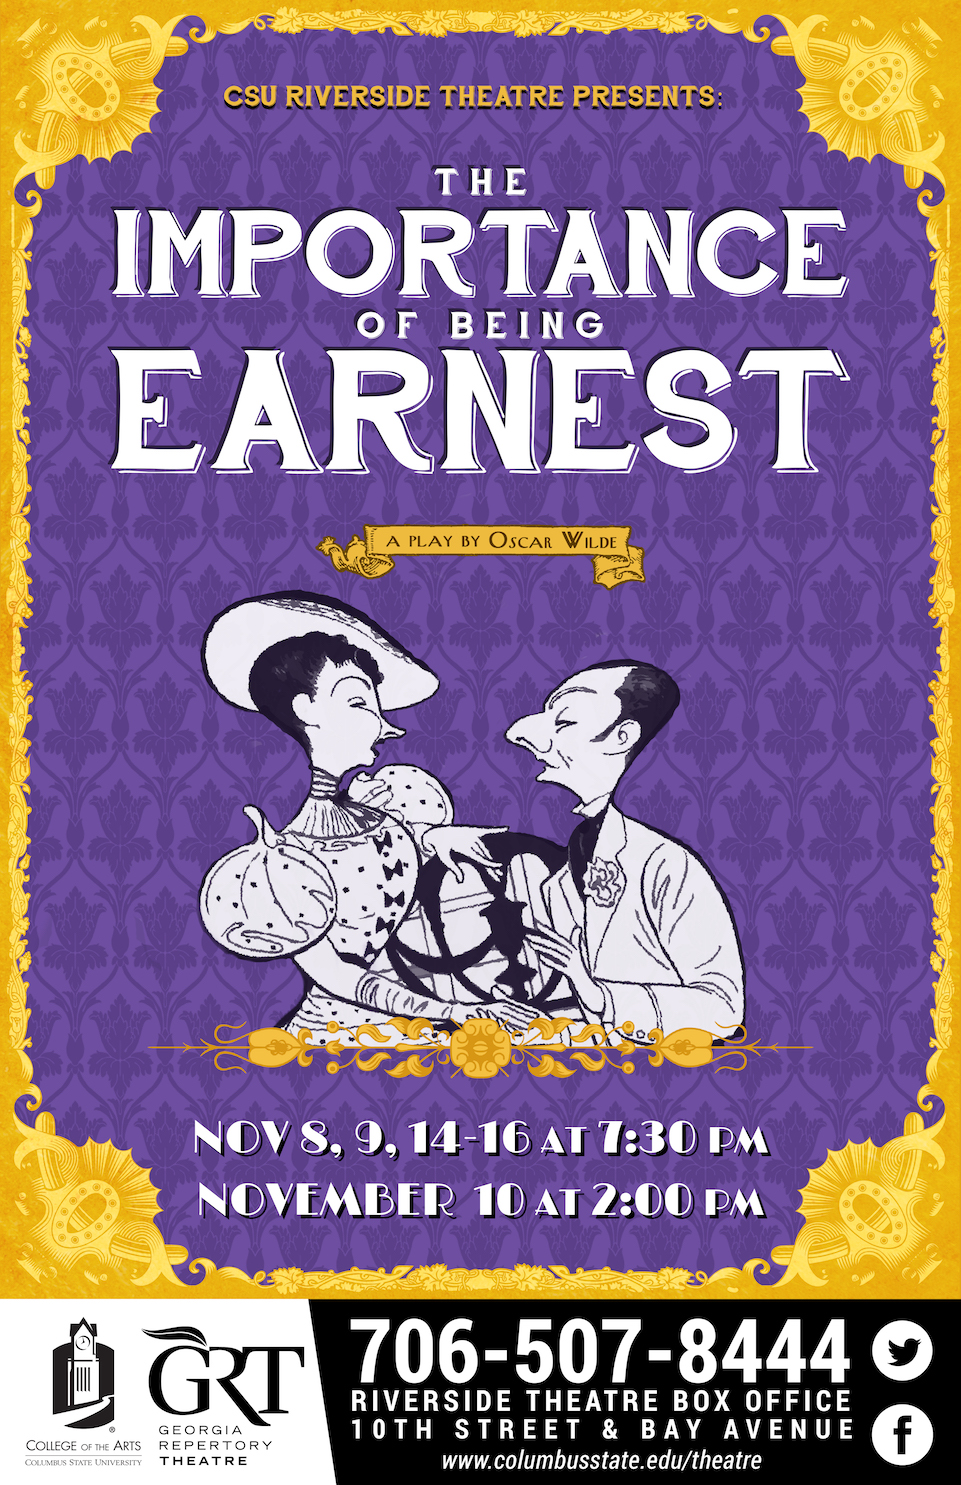 CSU Theatre: The Importance of Being Earnest